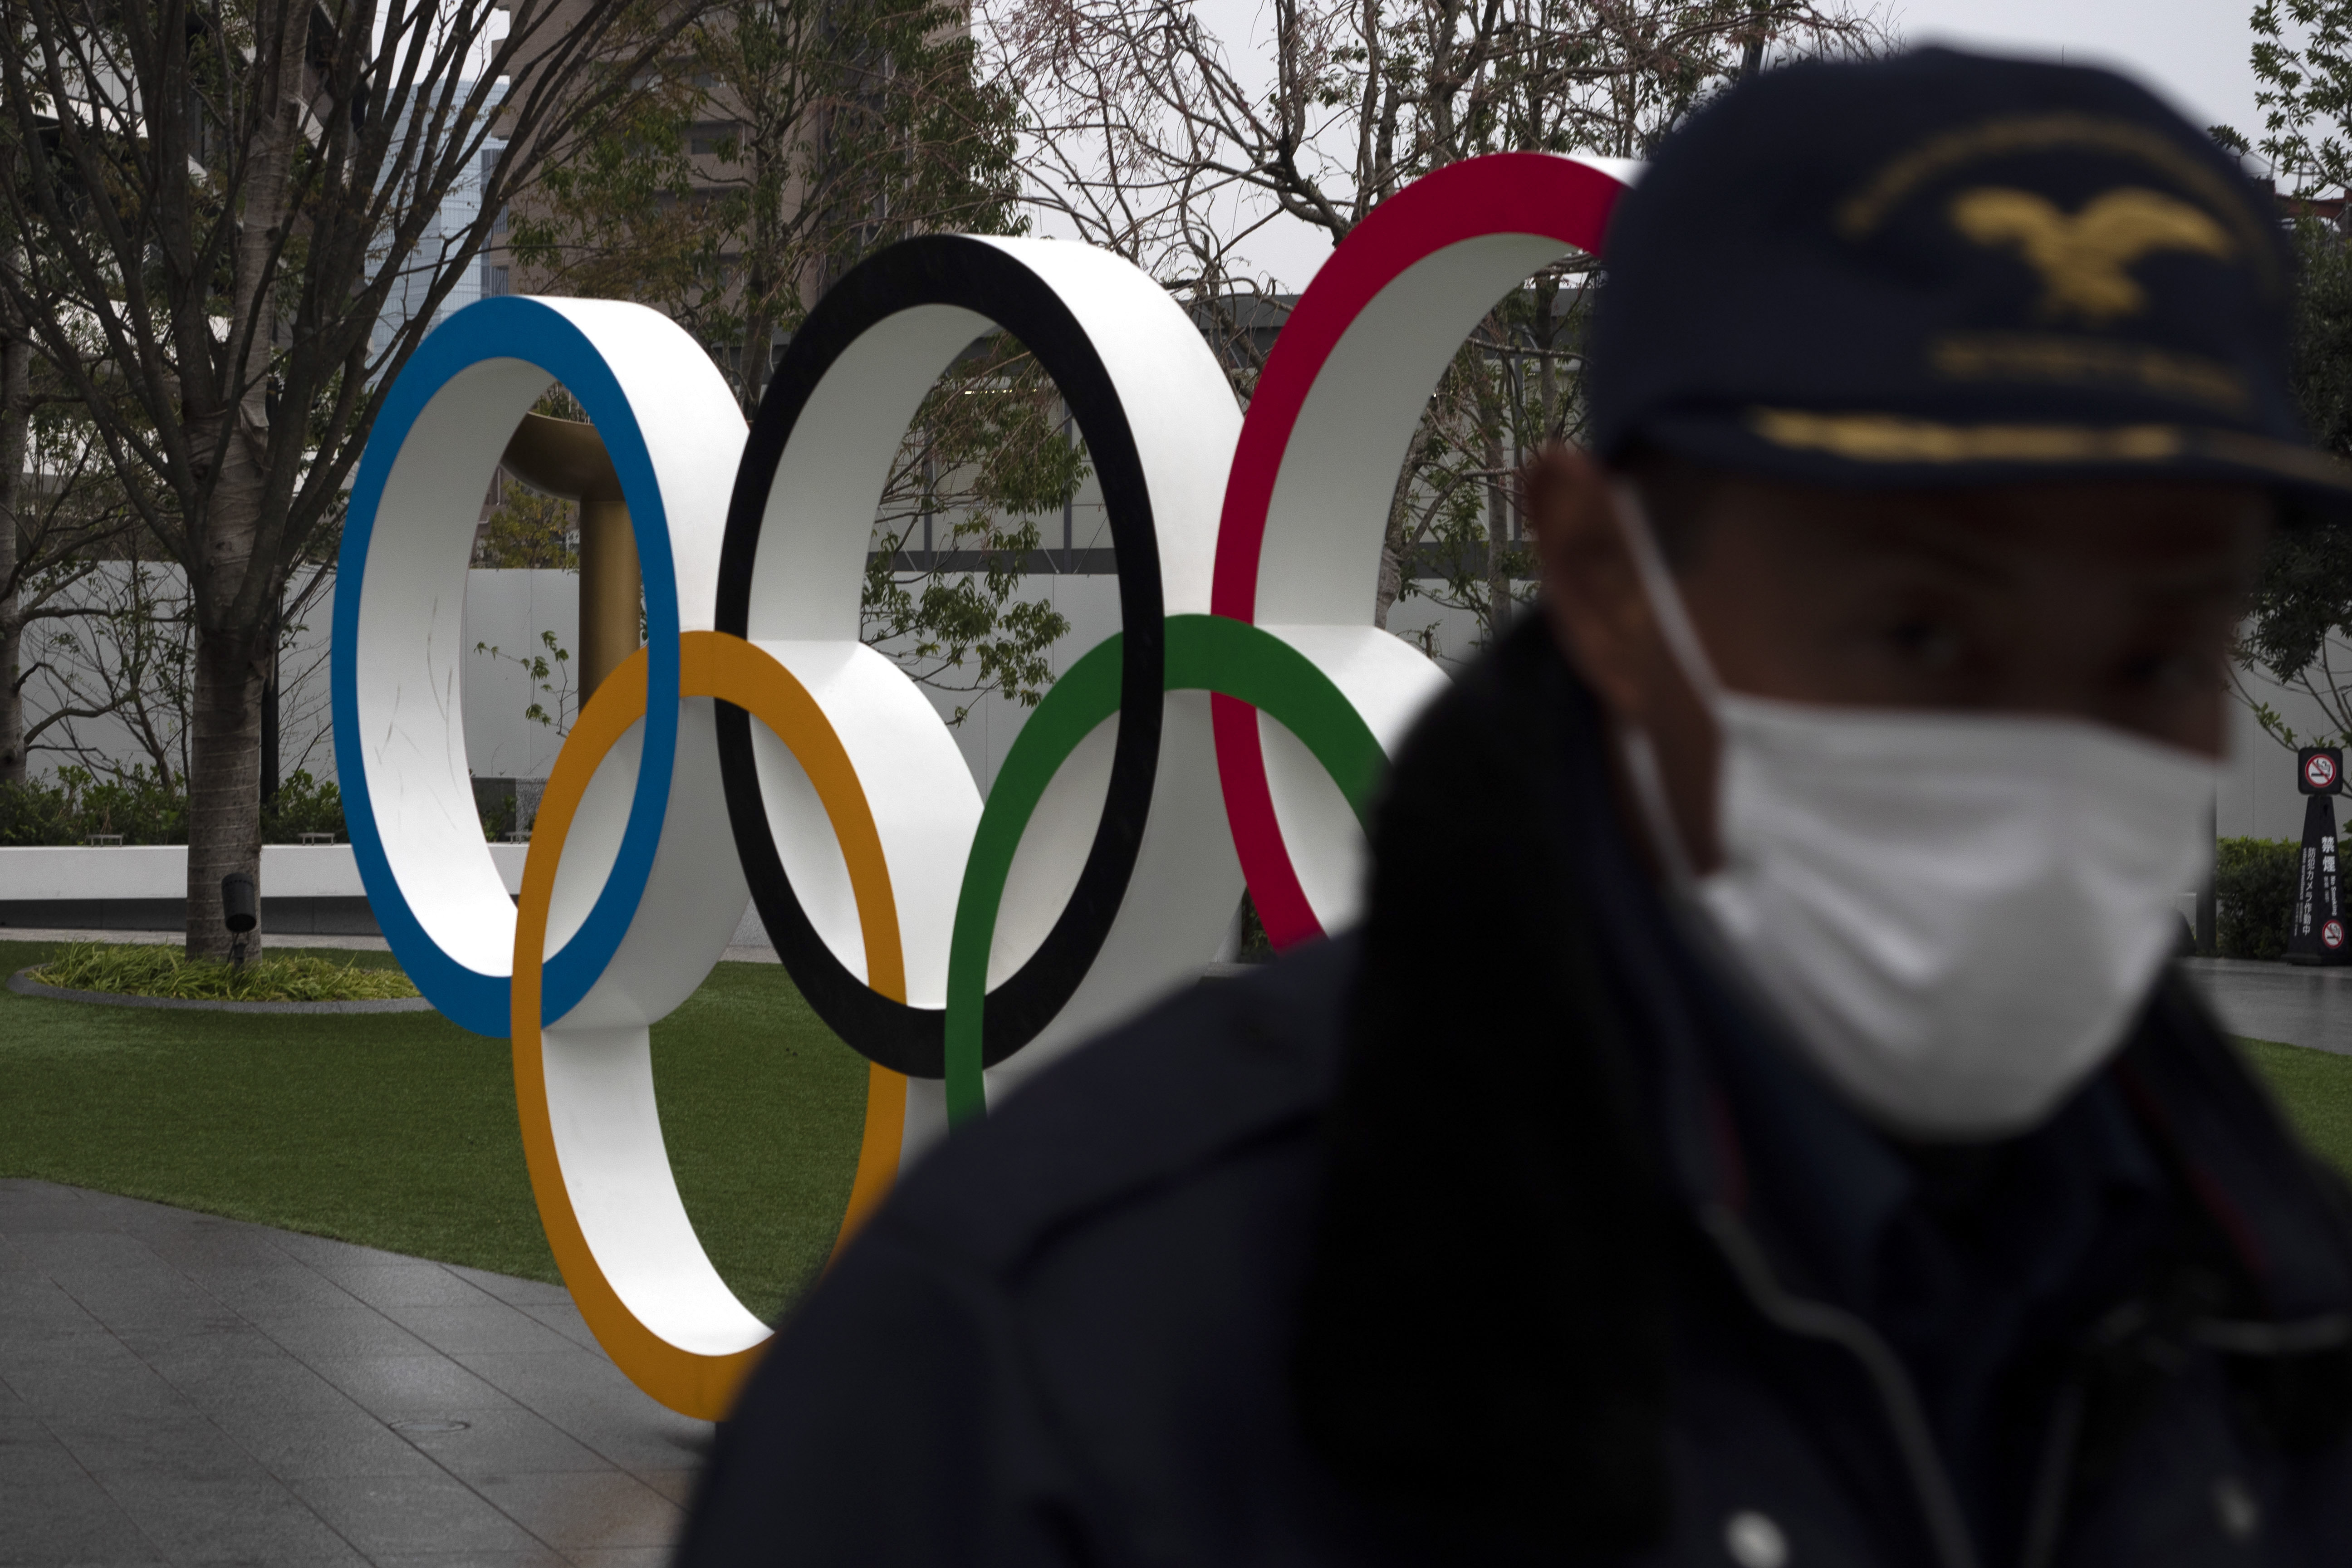 A security guard walks past the Olympic rings near the New National Stadium in Tokyo, Monday, March 23, 2020. The IOC will take up to four weeks to consider postponing the Tokyo Olympics amid mounting criticism of its handling of the coronavirus crisis that now includes a call for delay from the leader of track and field, the biggest sport at the games.